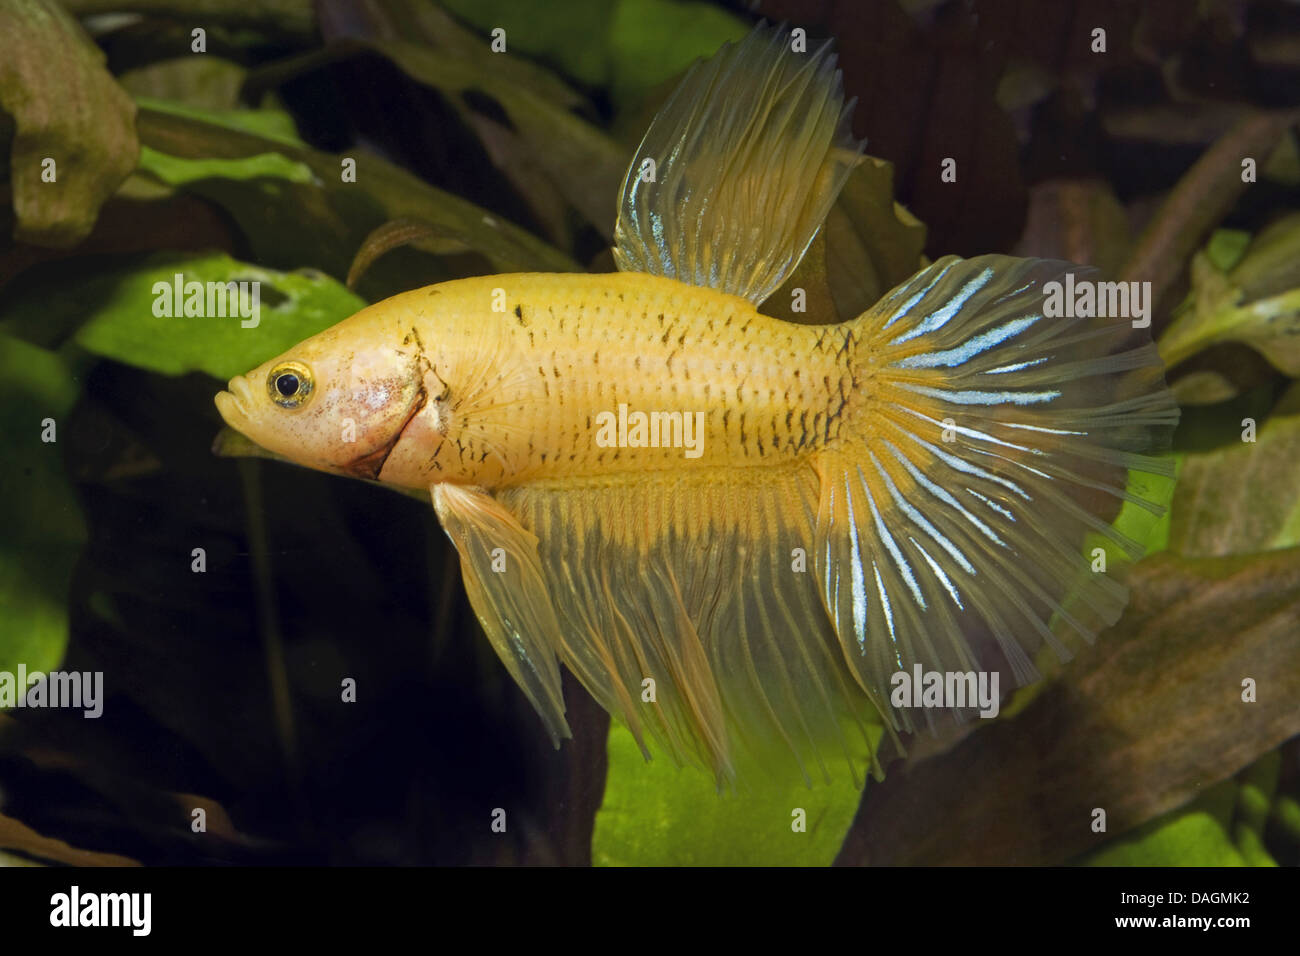 Black and yellow freshwater aquarium fish - Siamese Fighting Fish Siamese Fighter Betta Splendens Butterfly Male Butterfly Yellow